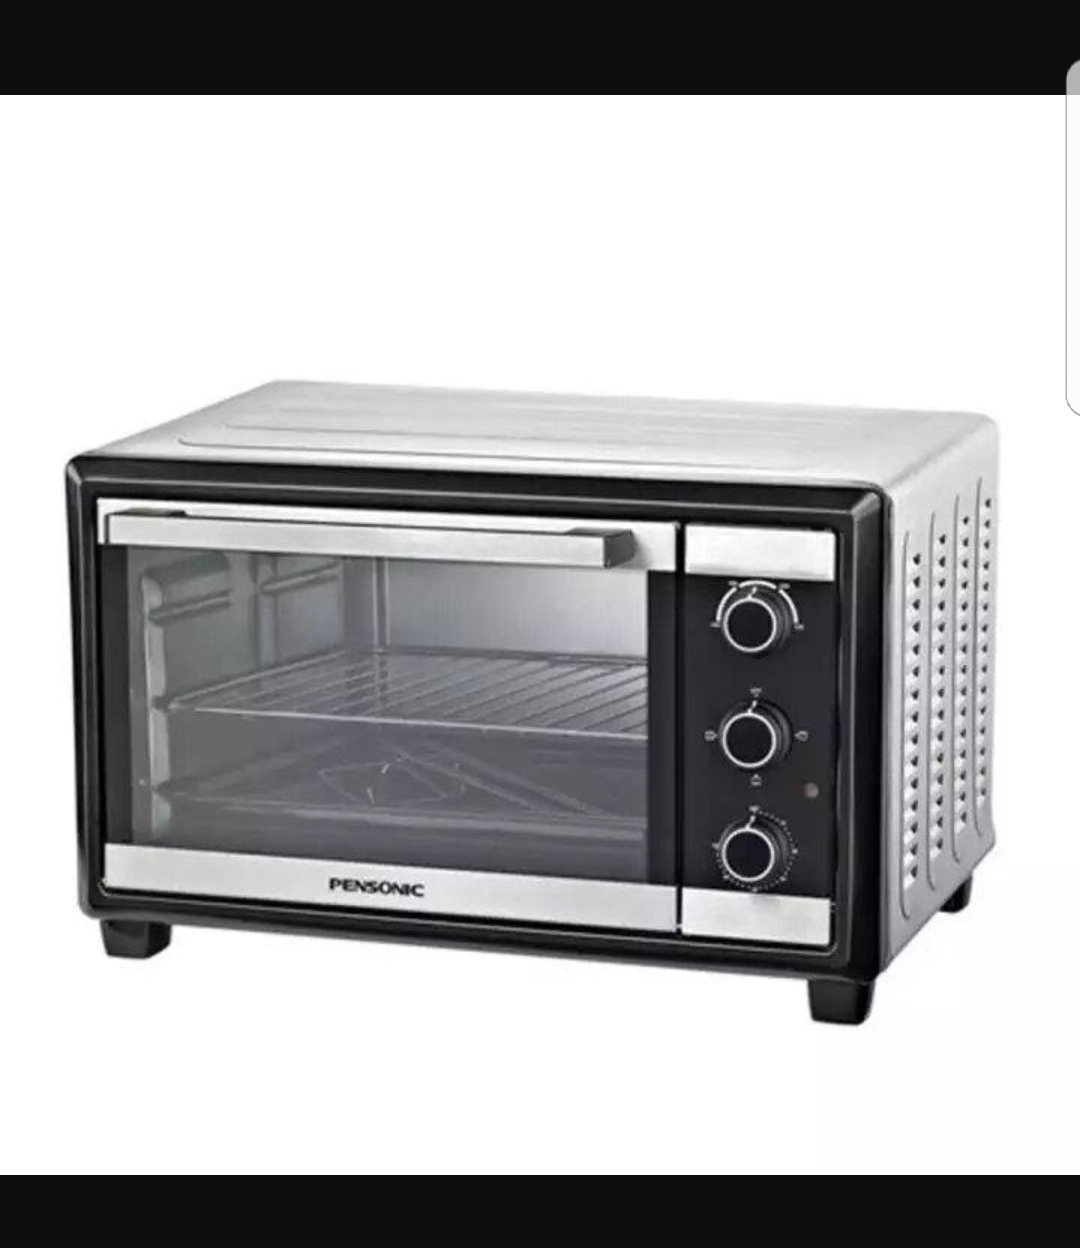 This is a 23-L oven and is a great budget oven: shopjourney